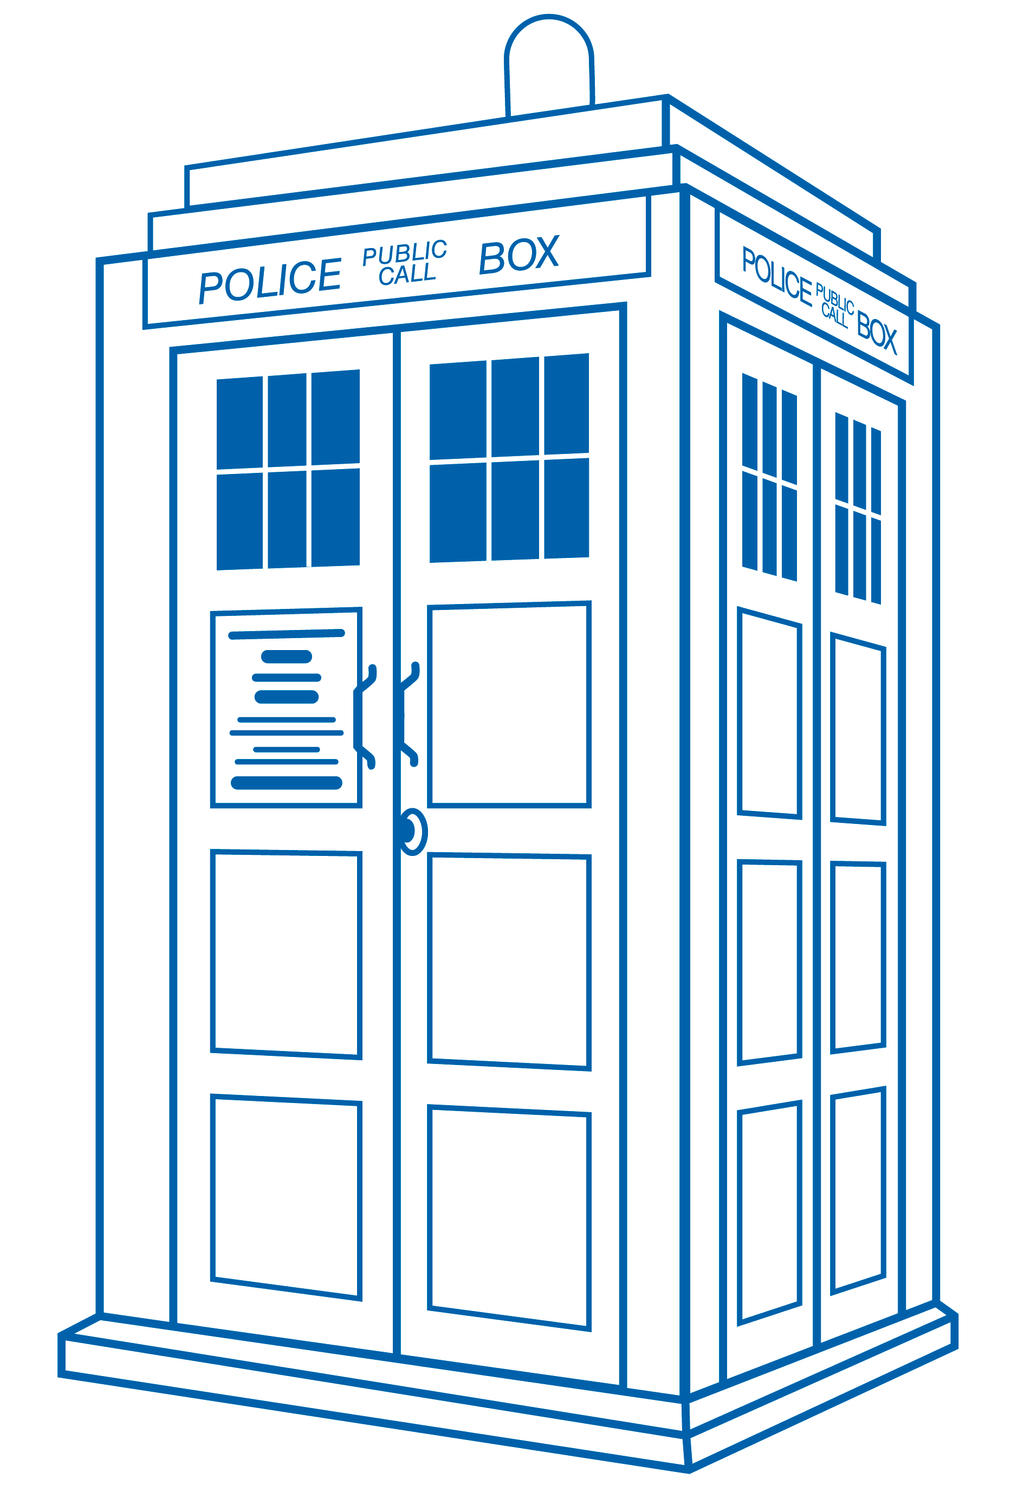 Doctor Who Clip Art Tardis Tardis white by danielasynnerTardis Vector Outline